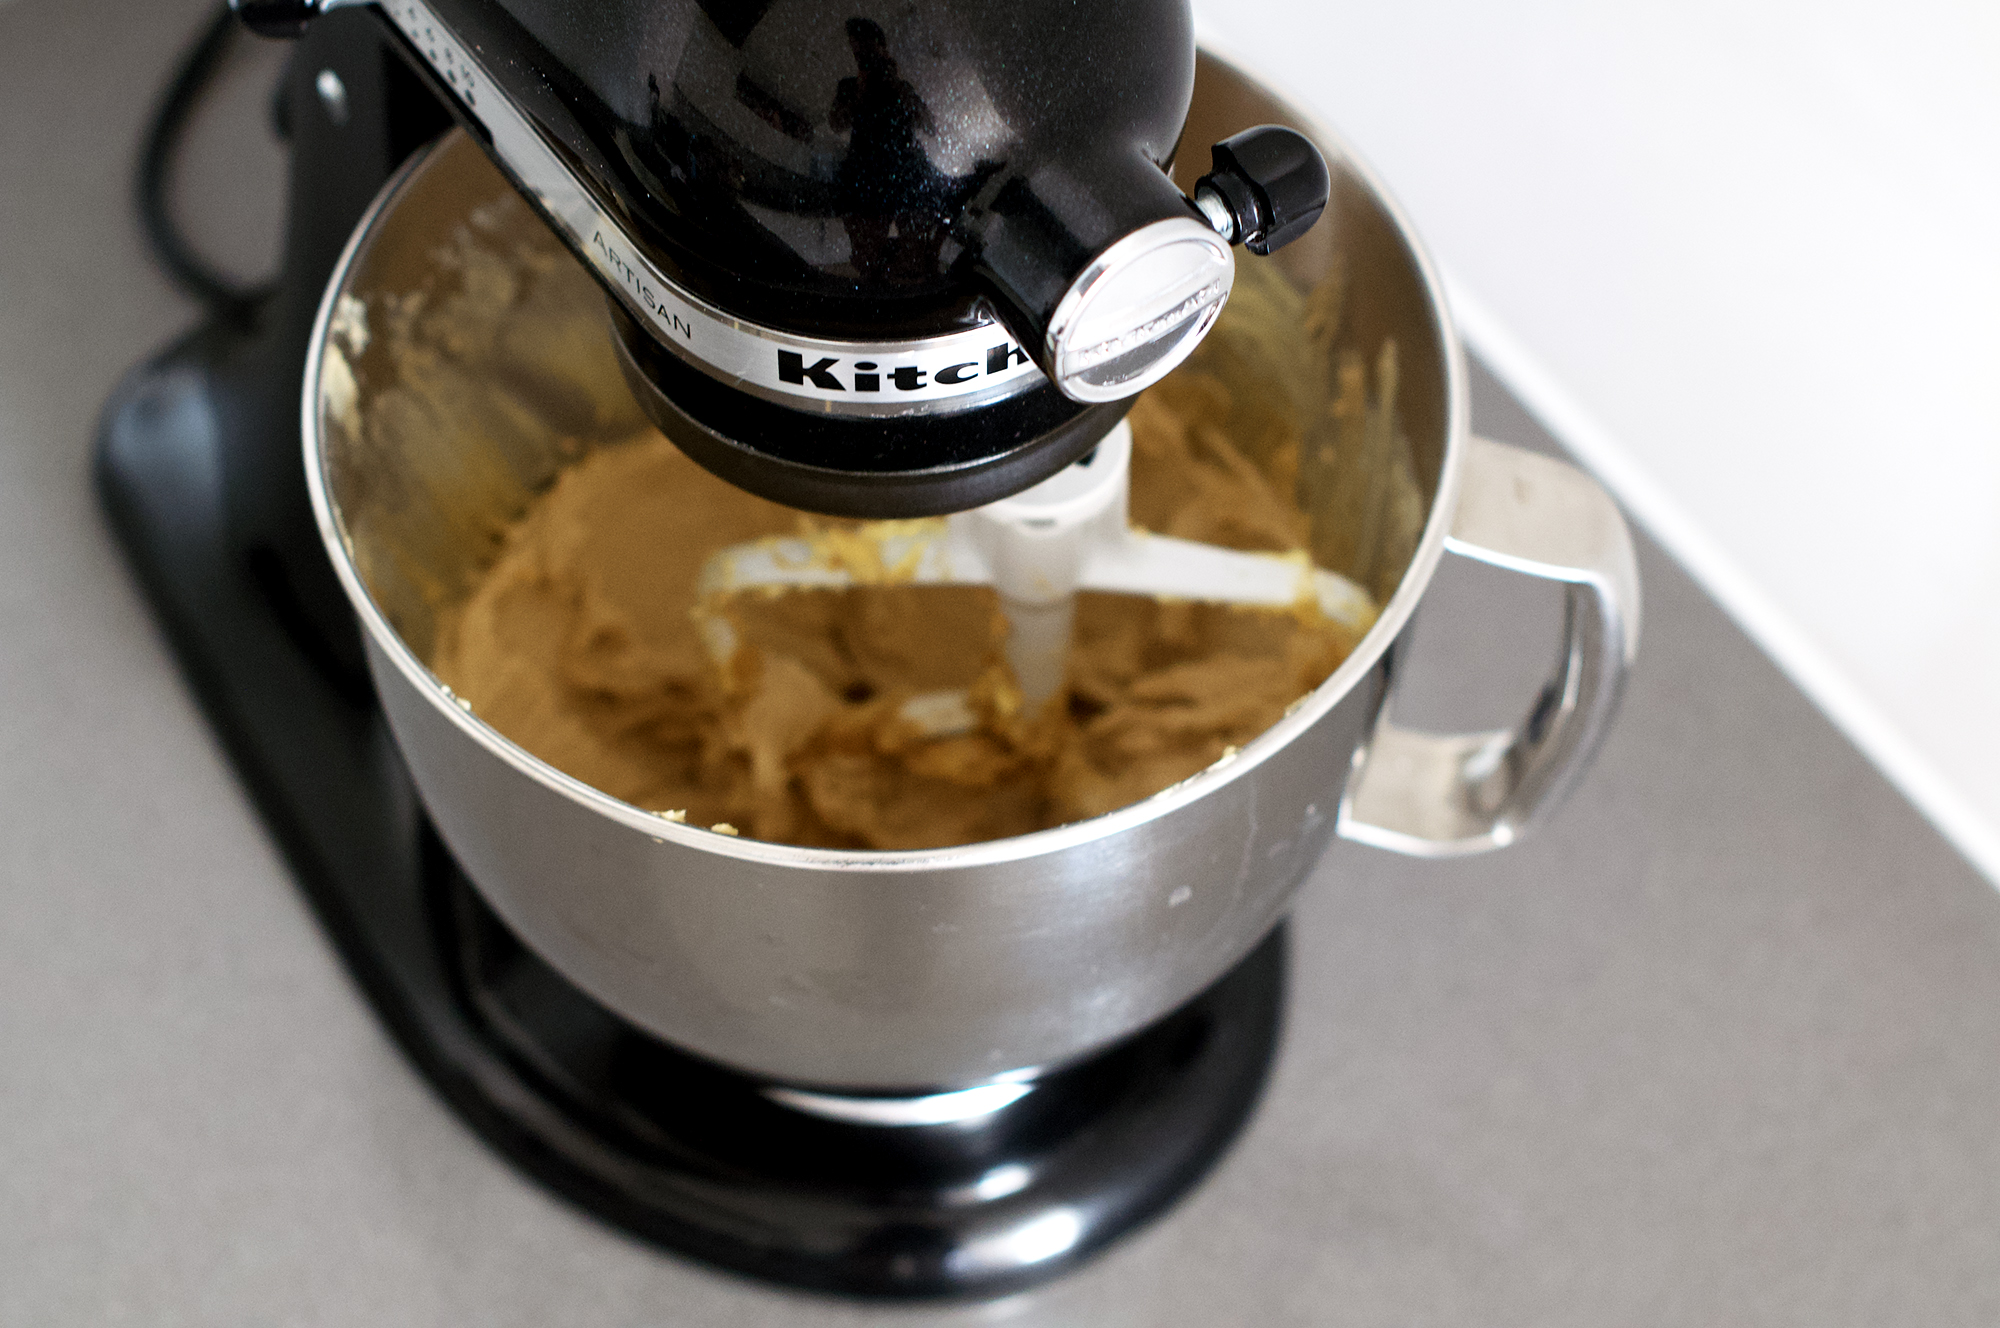 KitchenAid apple and cinnamon pie recipe